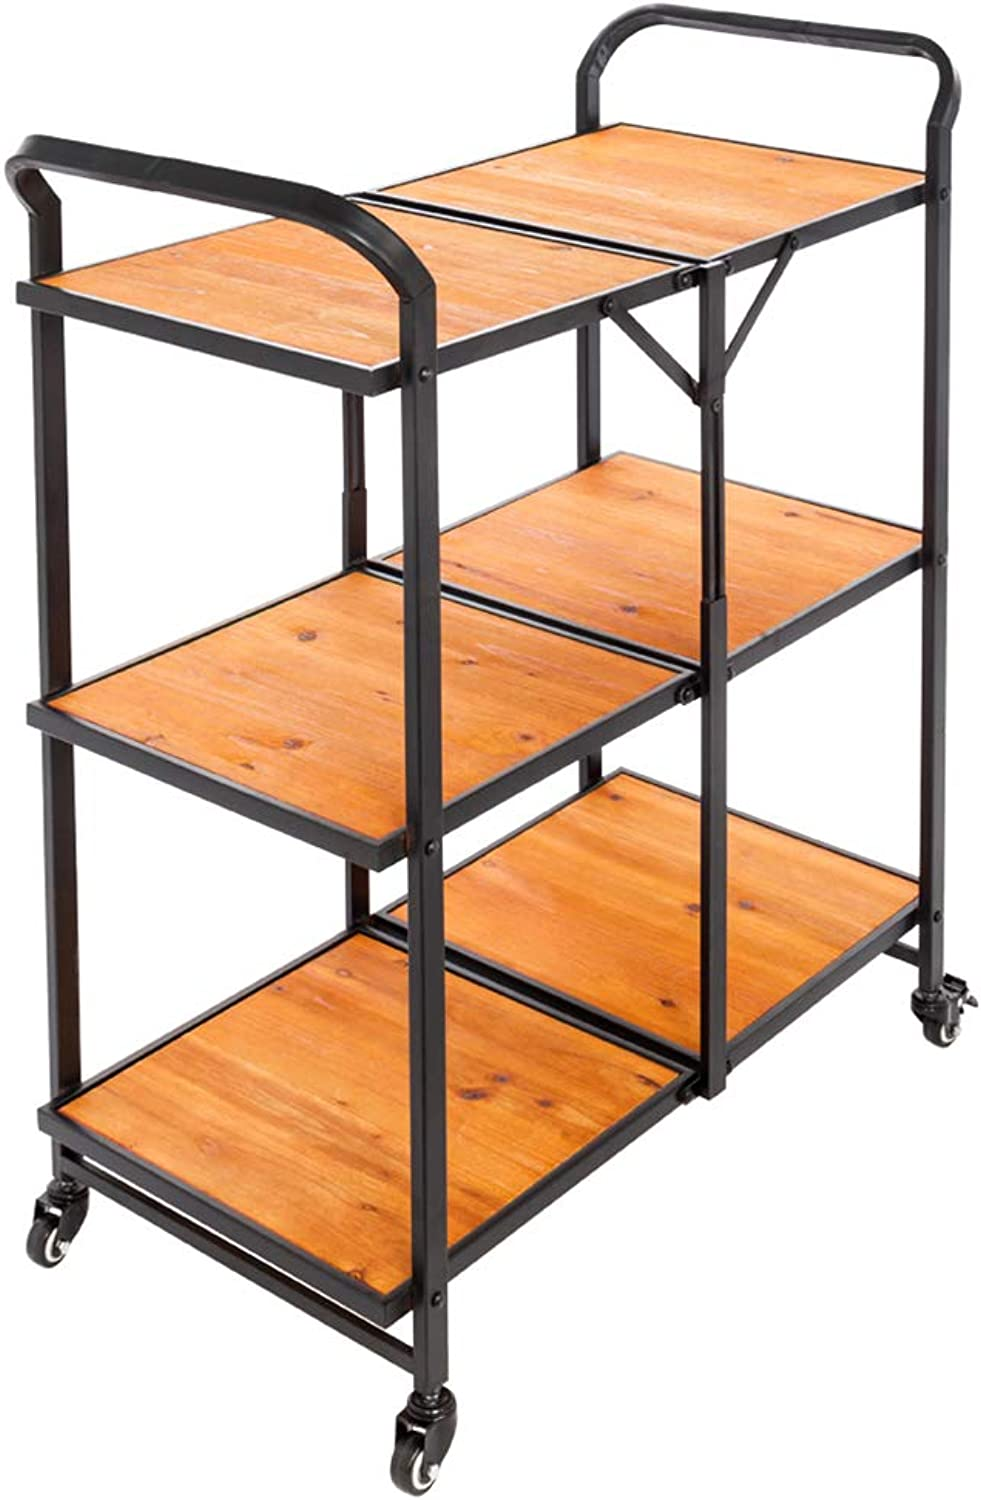 Cogihome 3-Tier Kitchen Trolley, Foldable Rolling Kitchen Bar Cart Iron Wood Table Serving Carts Storage Rack with Wheels for Party Restaurant Hotel Countertop